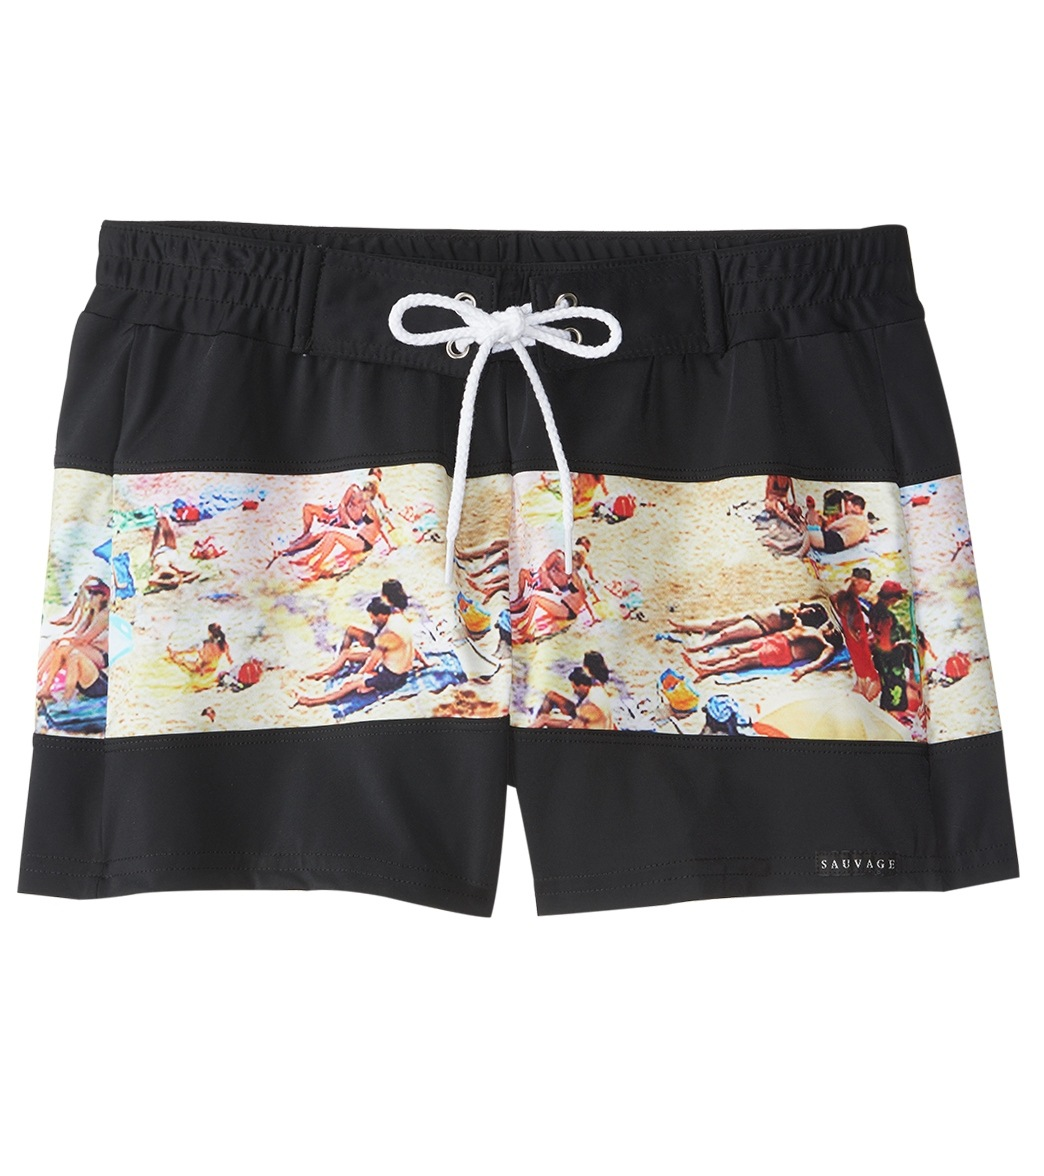 91b8f080a5ddf Sauvage Key West Solid Swim Trunk at SwimOutlet.com - Free Shipping